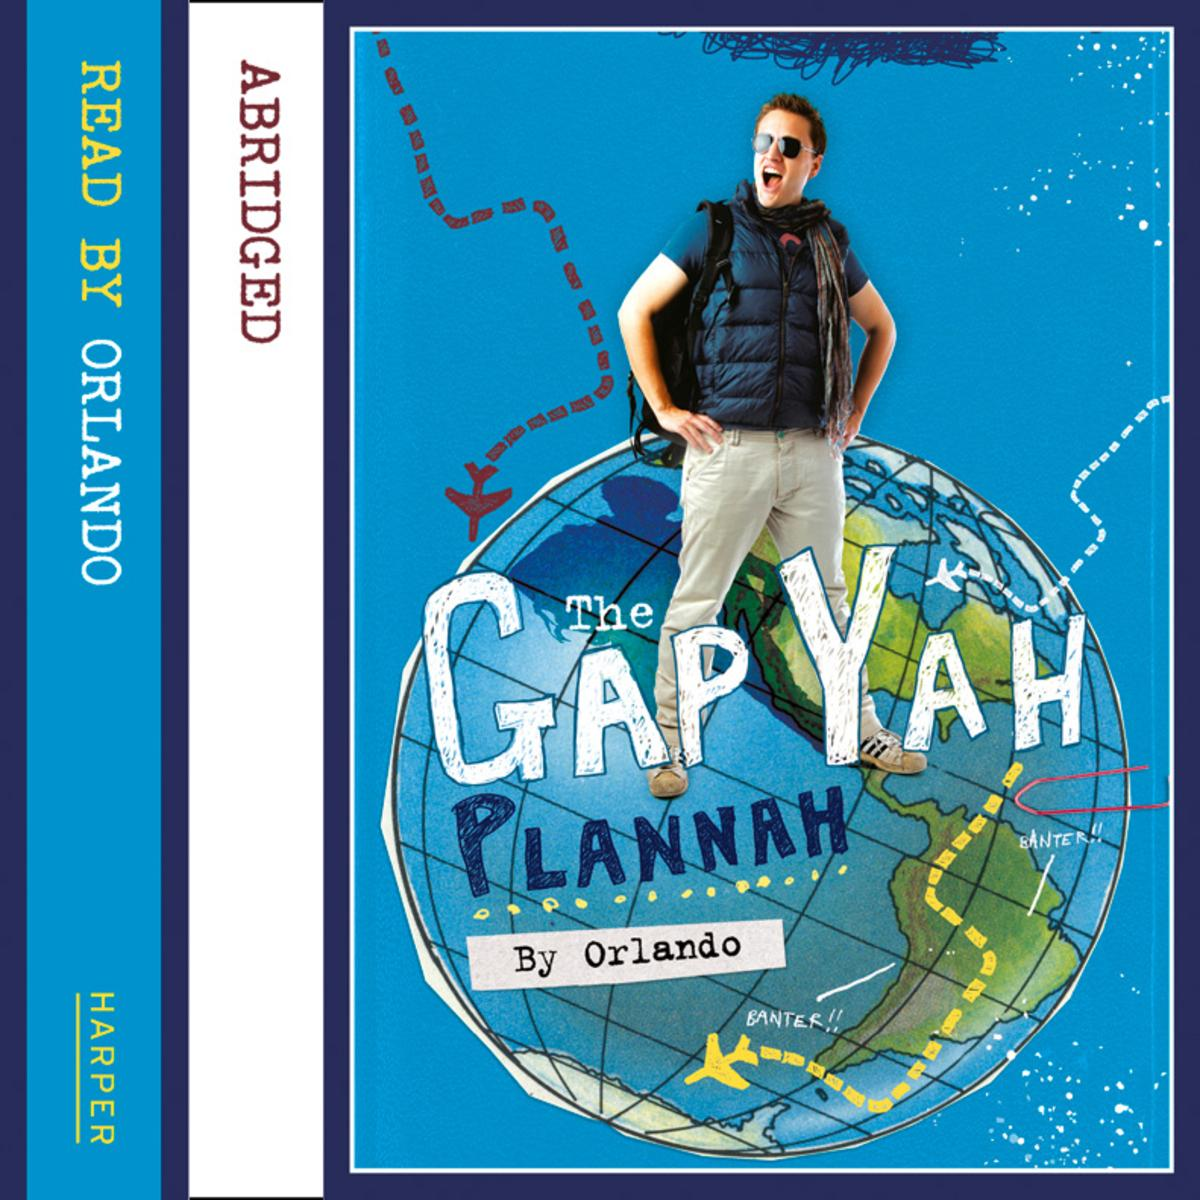 The Gap Yah Plannah - Audiobook